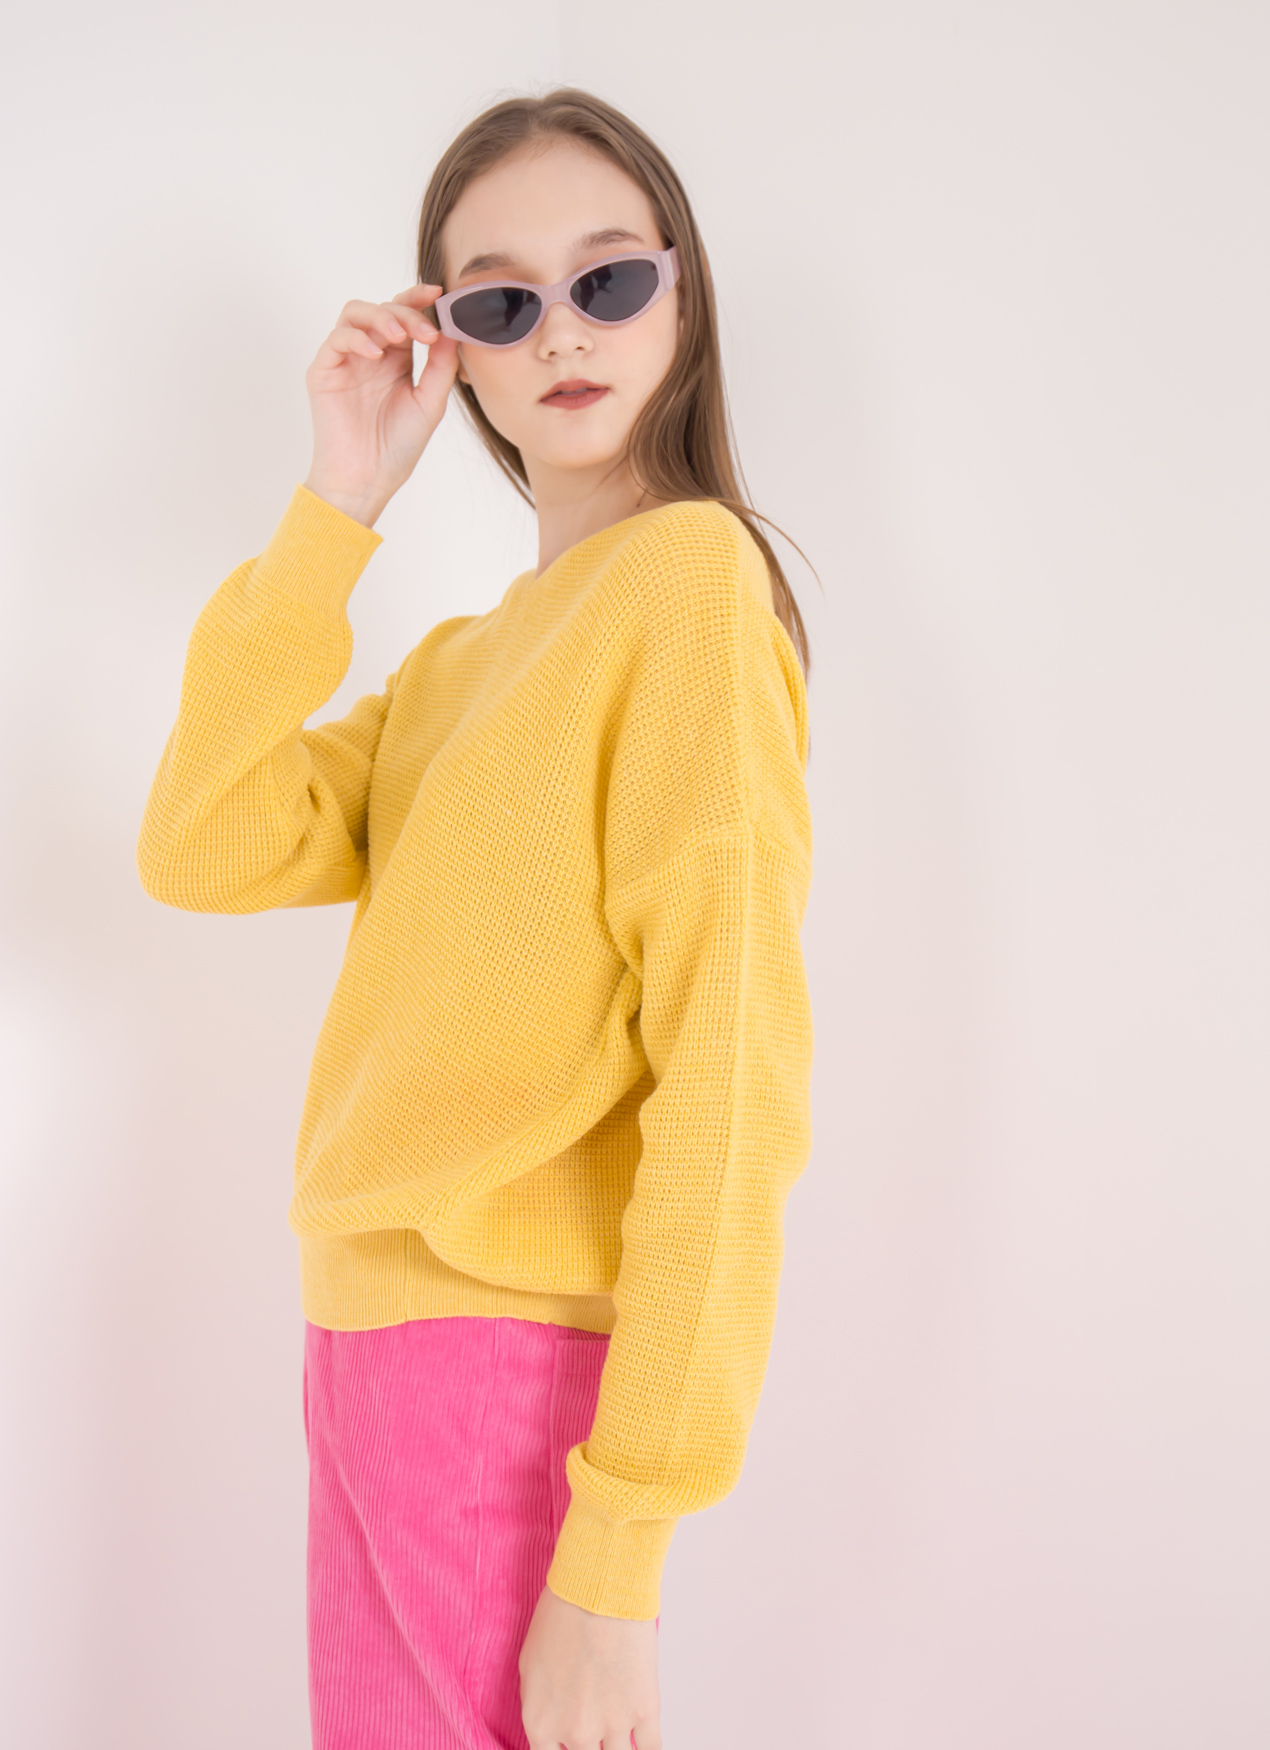 Green Parks Beatrice Sweater - Yellow